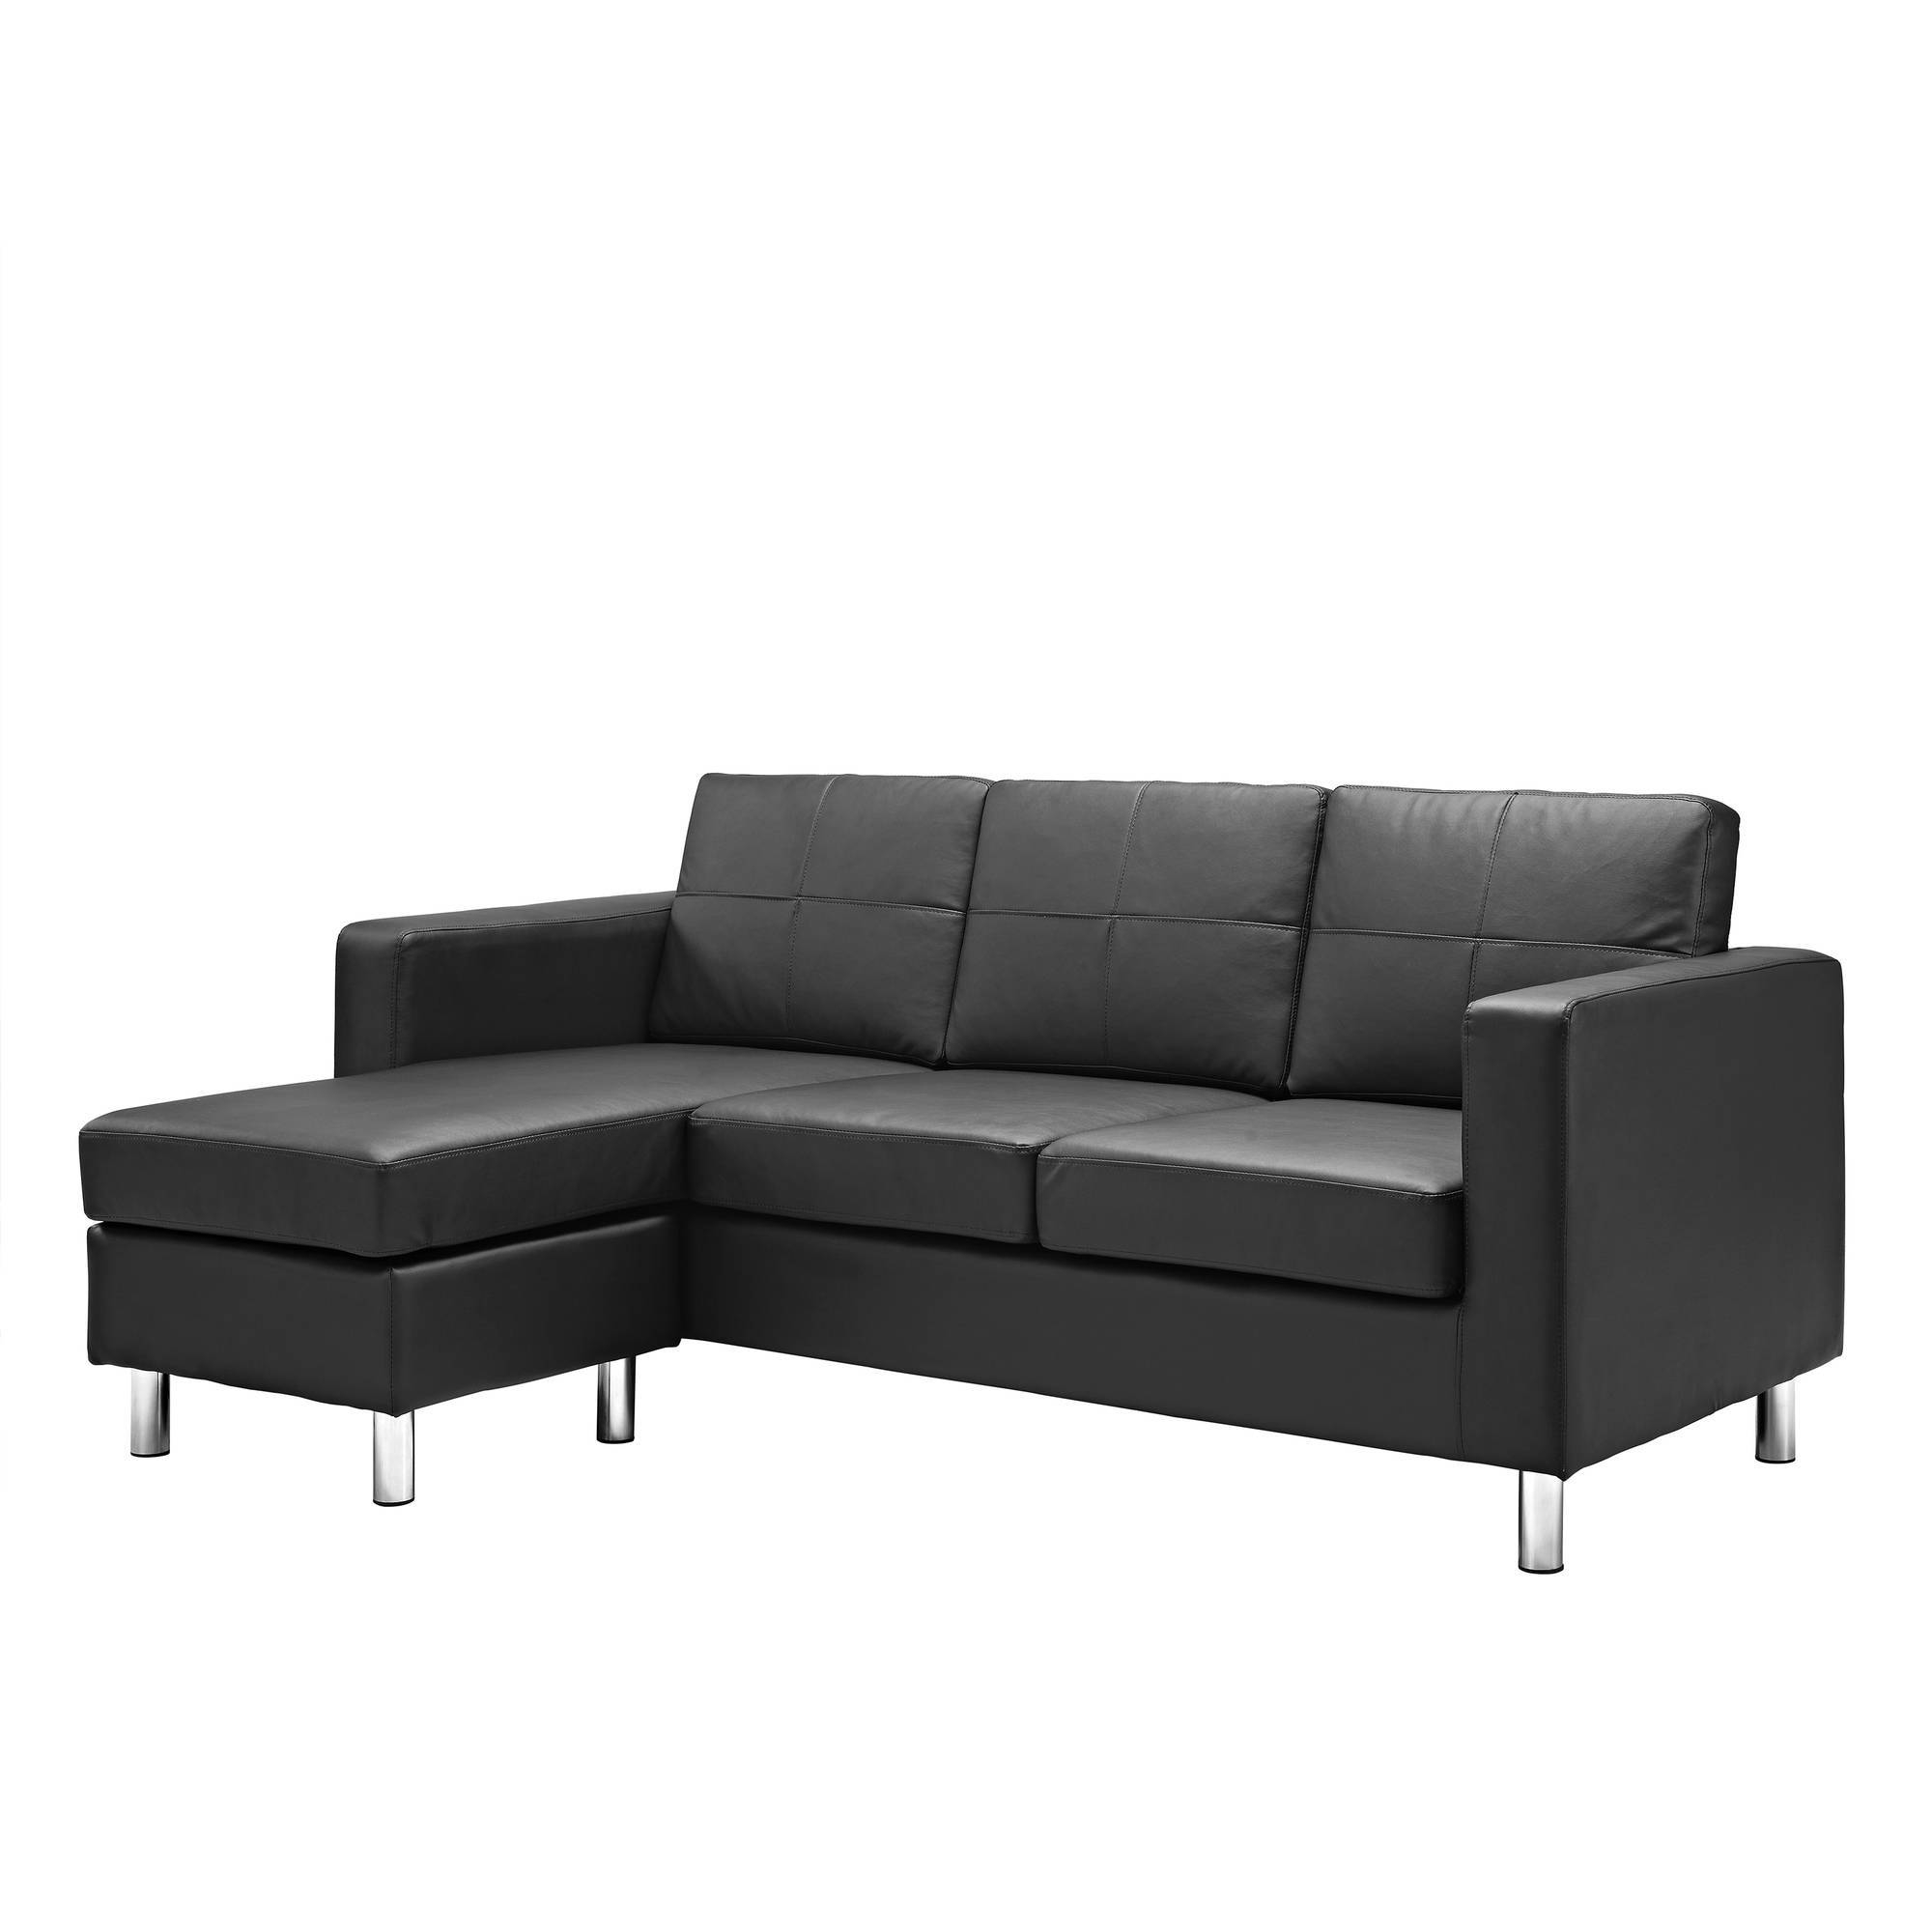 Dorel Living Small Spaces Configurable Sectional Sofa, Multiple regarding Small Sectional Sofa (Image 11 of 30)